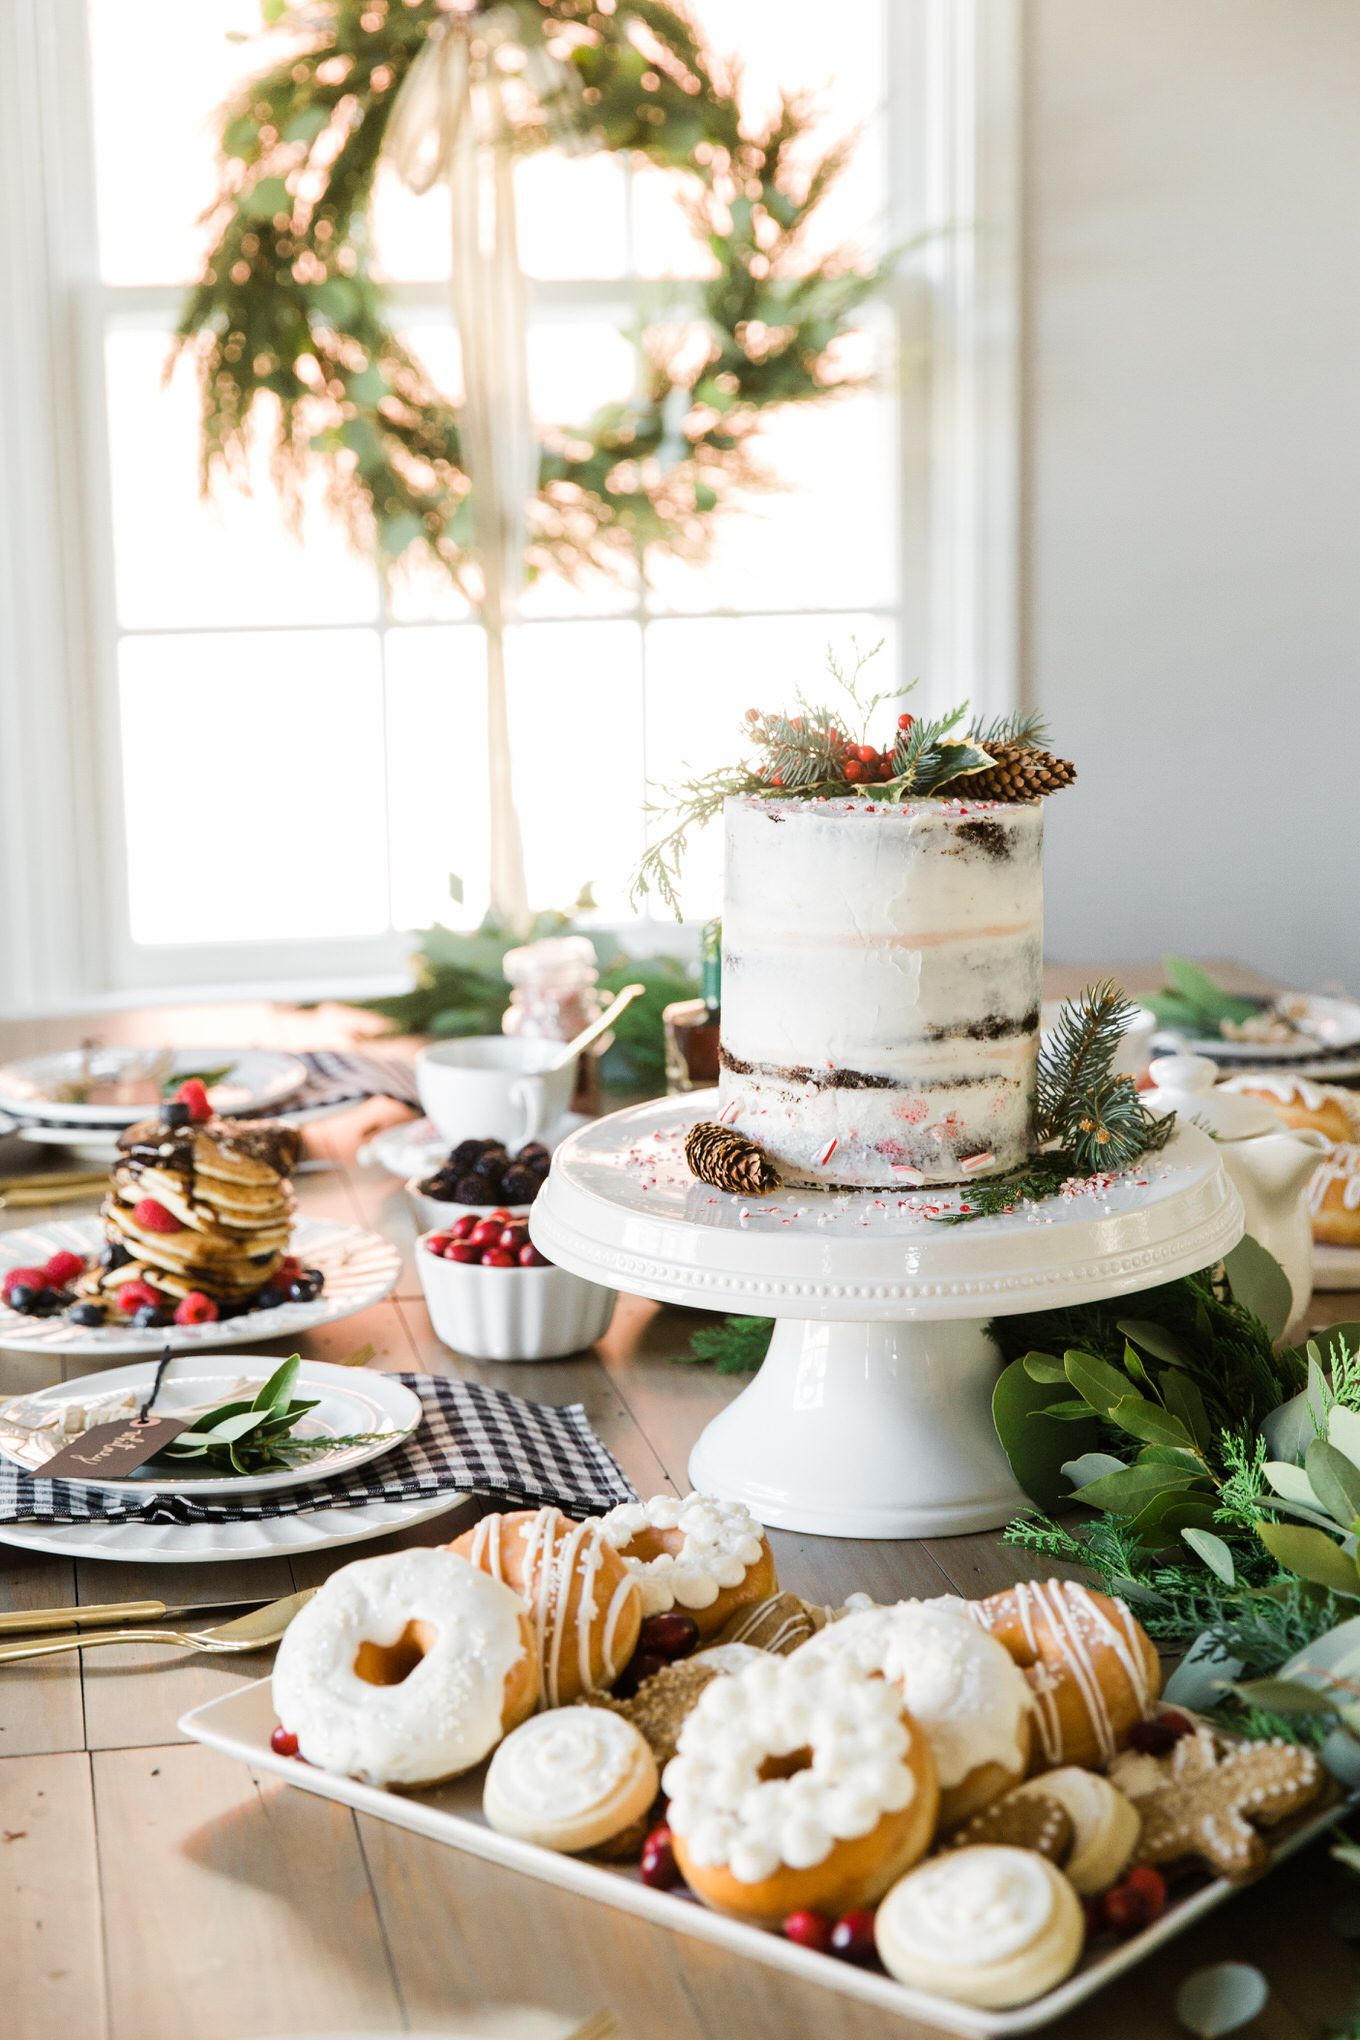 Holiday Brunch in Our New Home | Tasty TREATS | Pinterest | Brunch ...